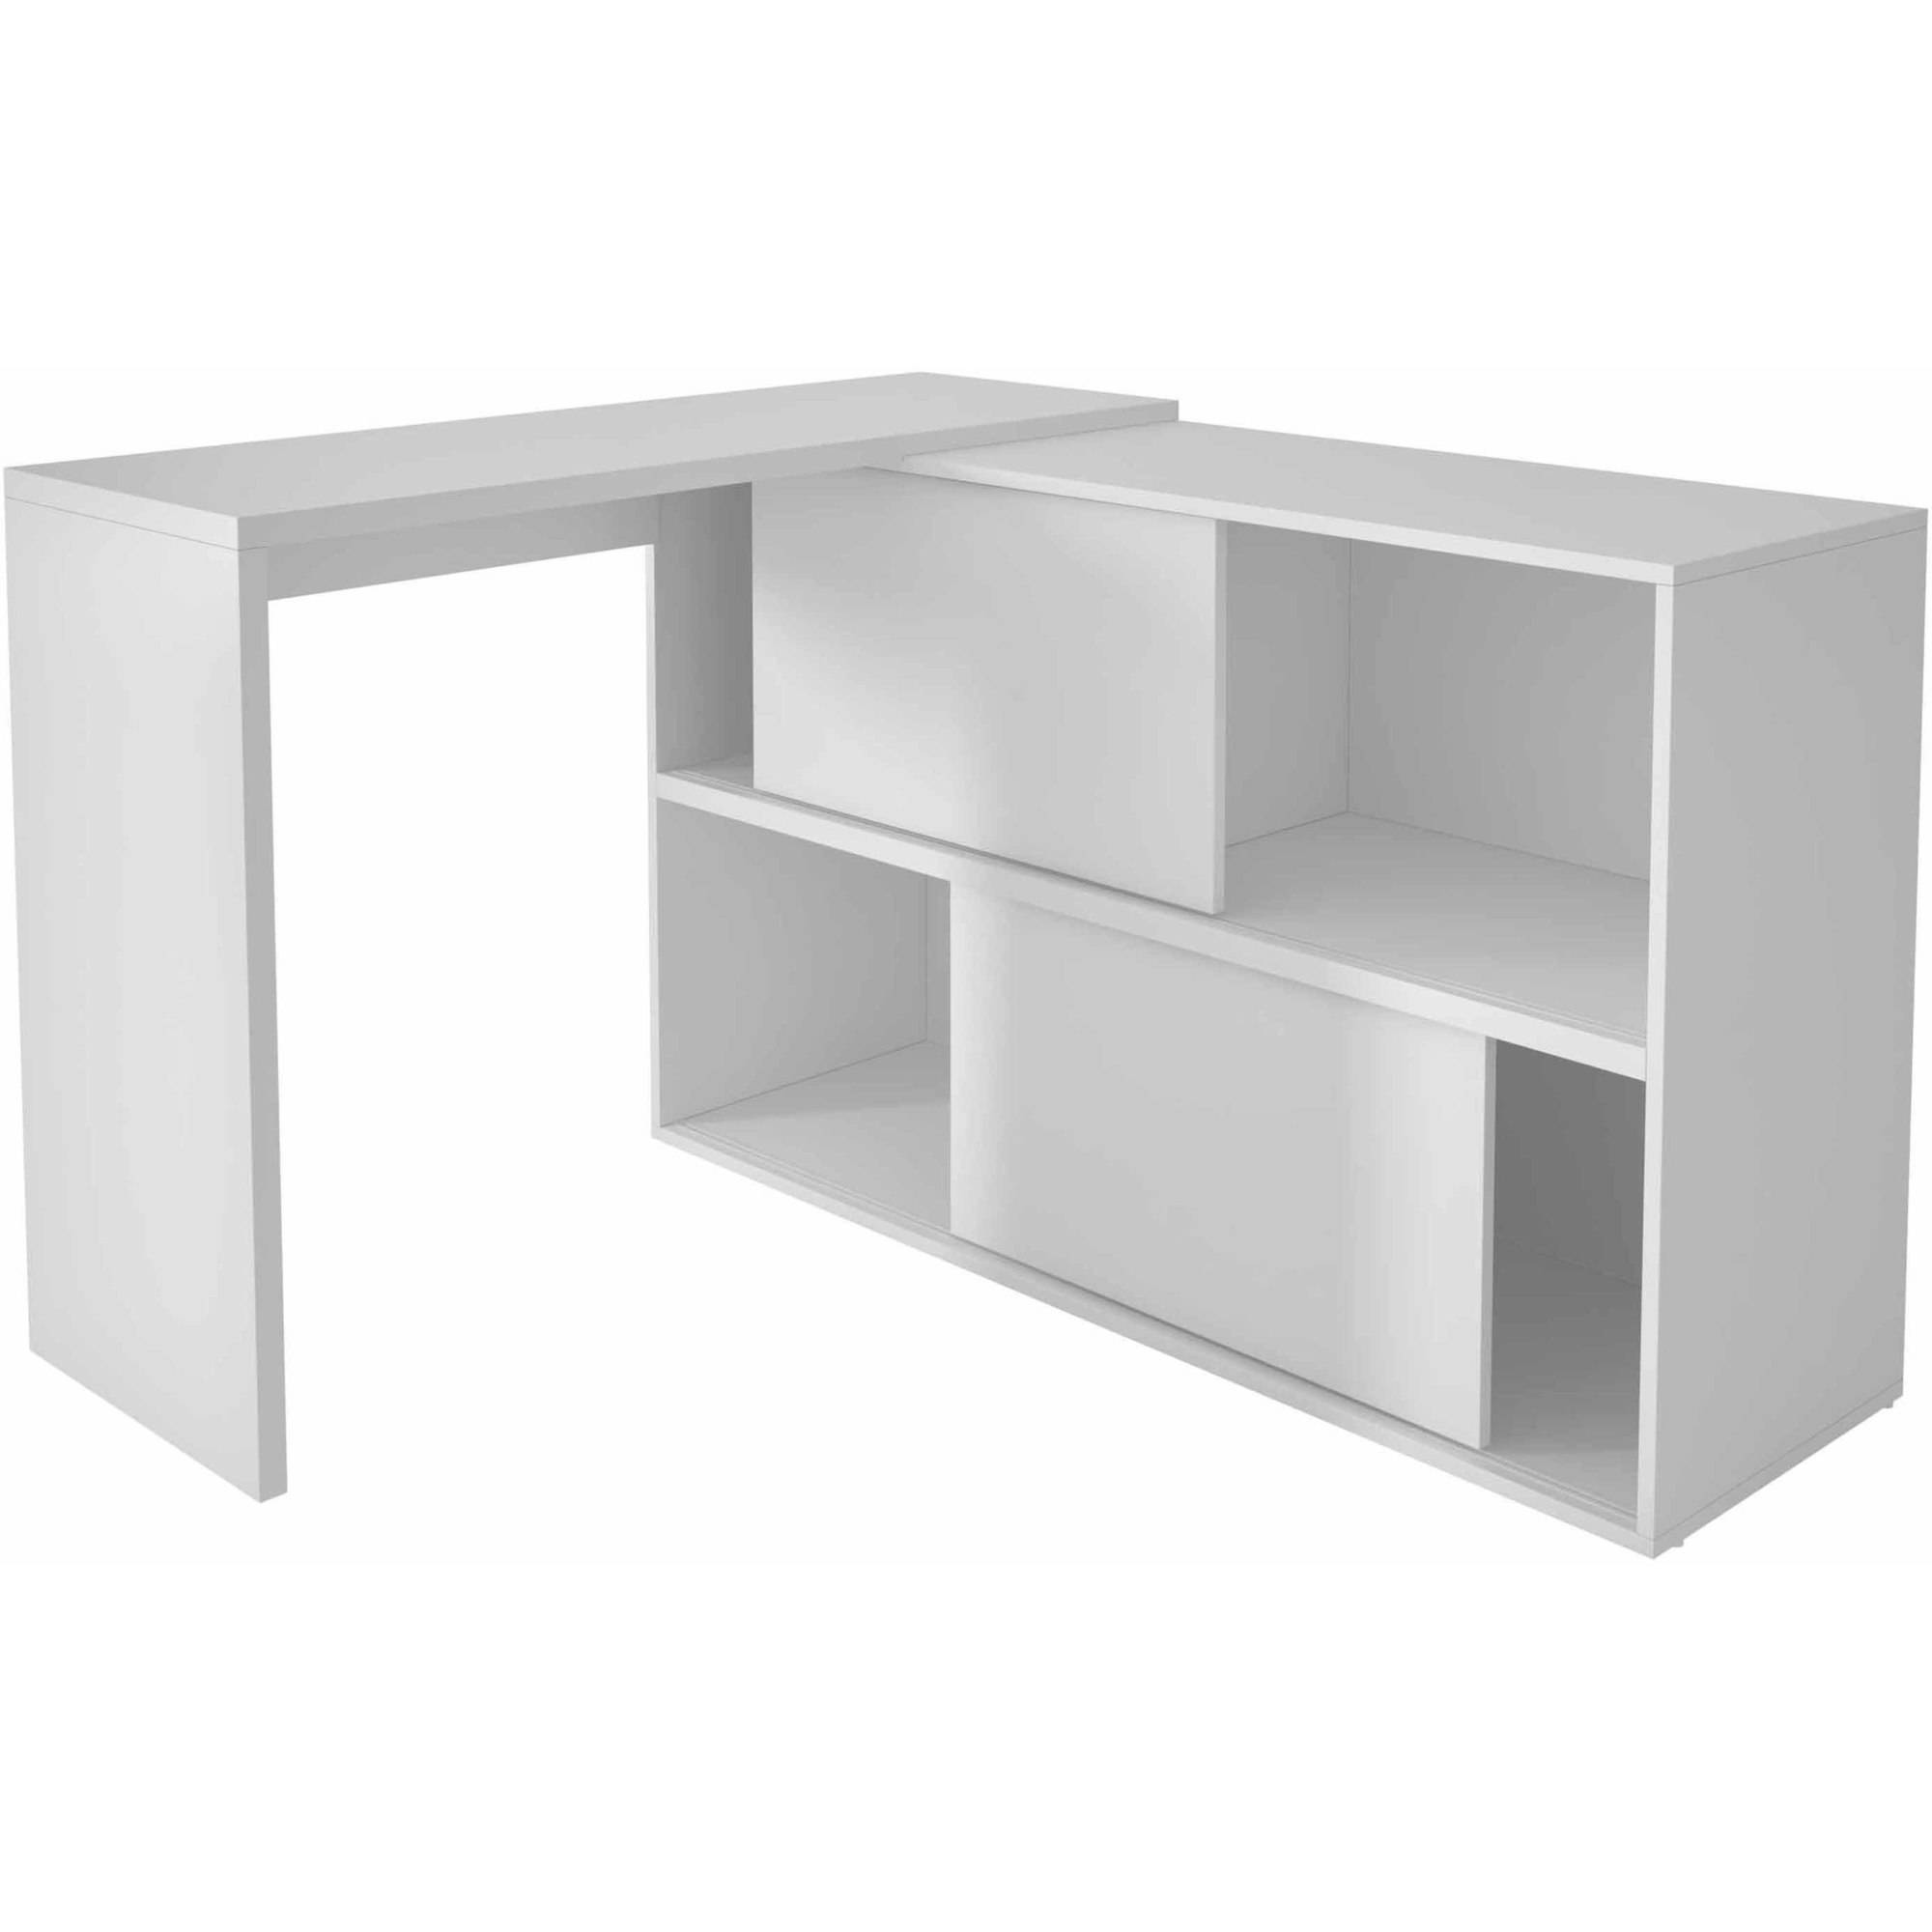 Image of Manhattan Comfort Accentuations Bari Bookcase Desk with 4 Shelves